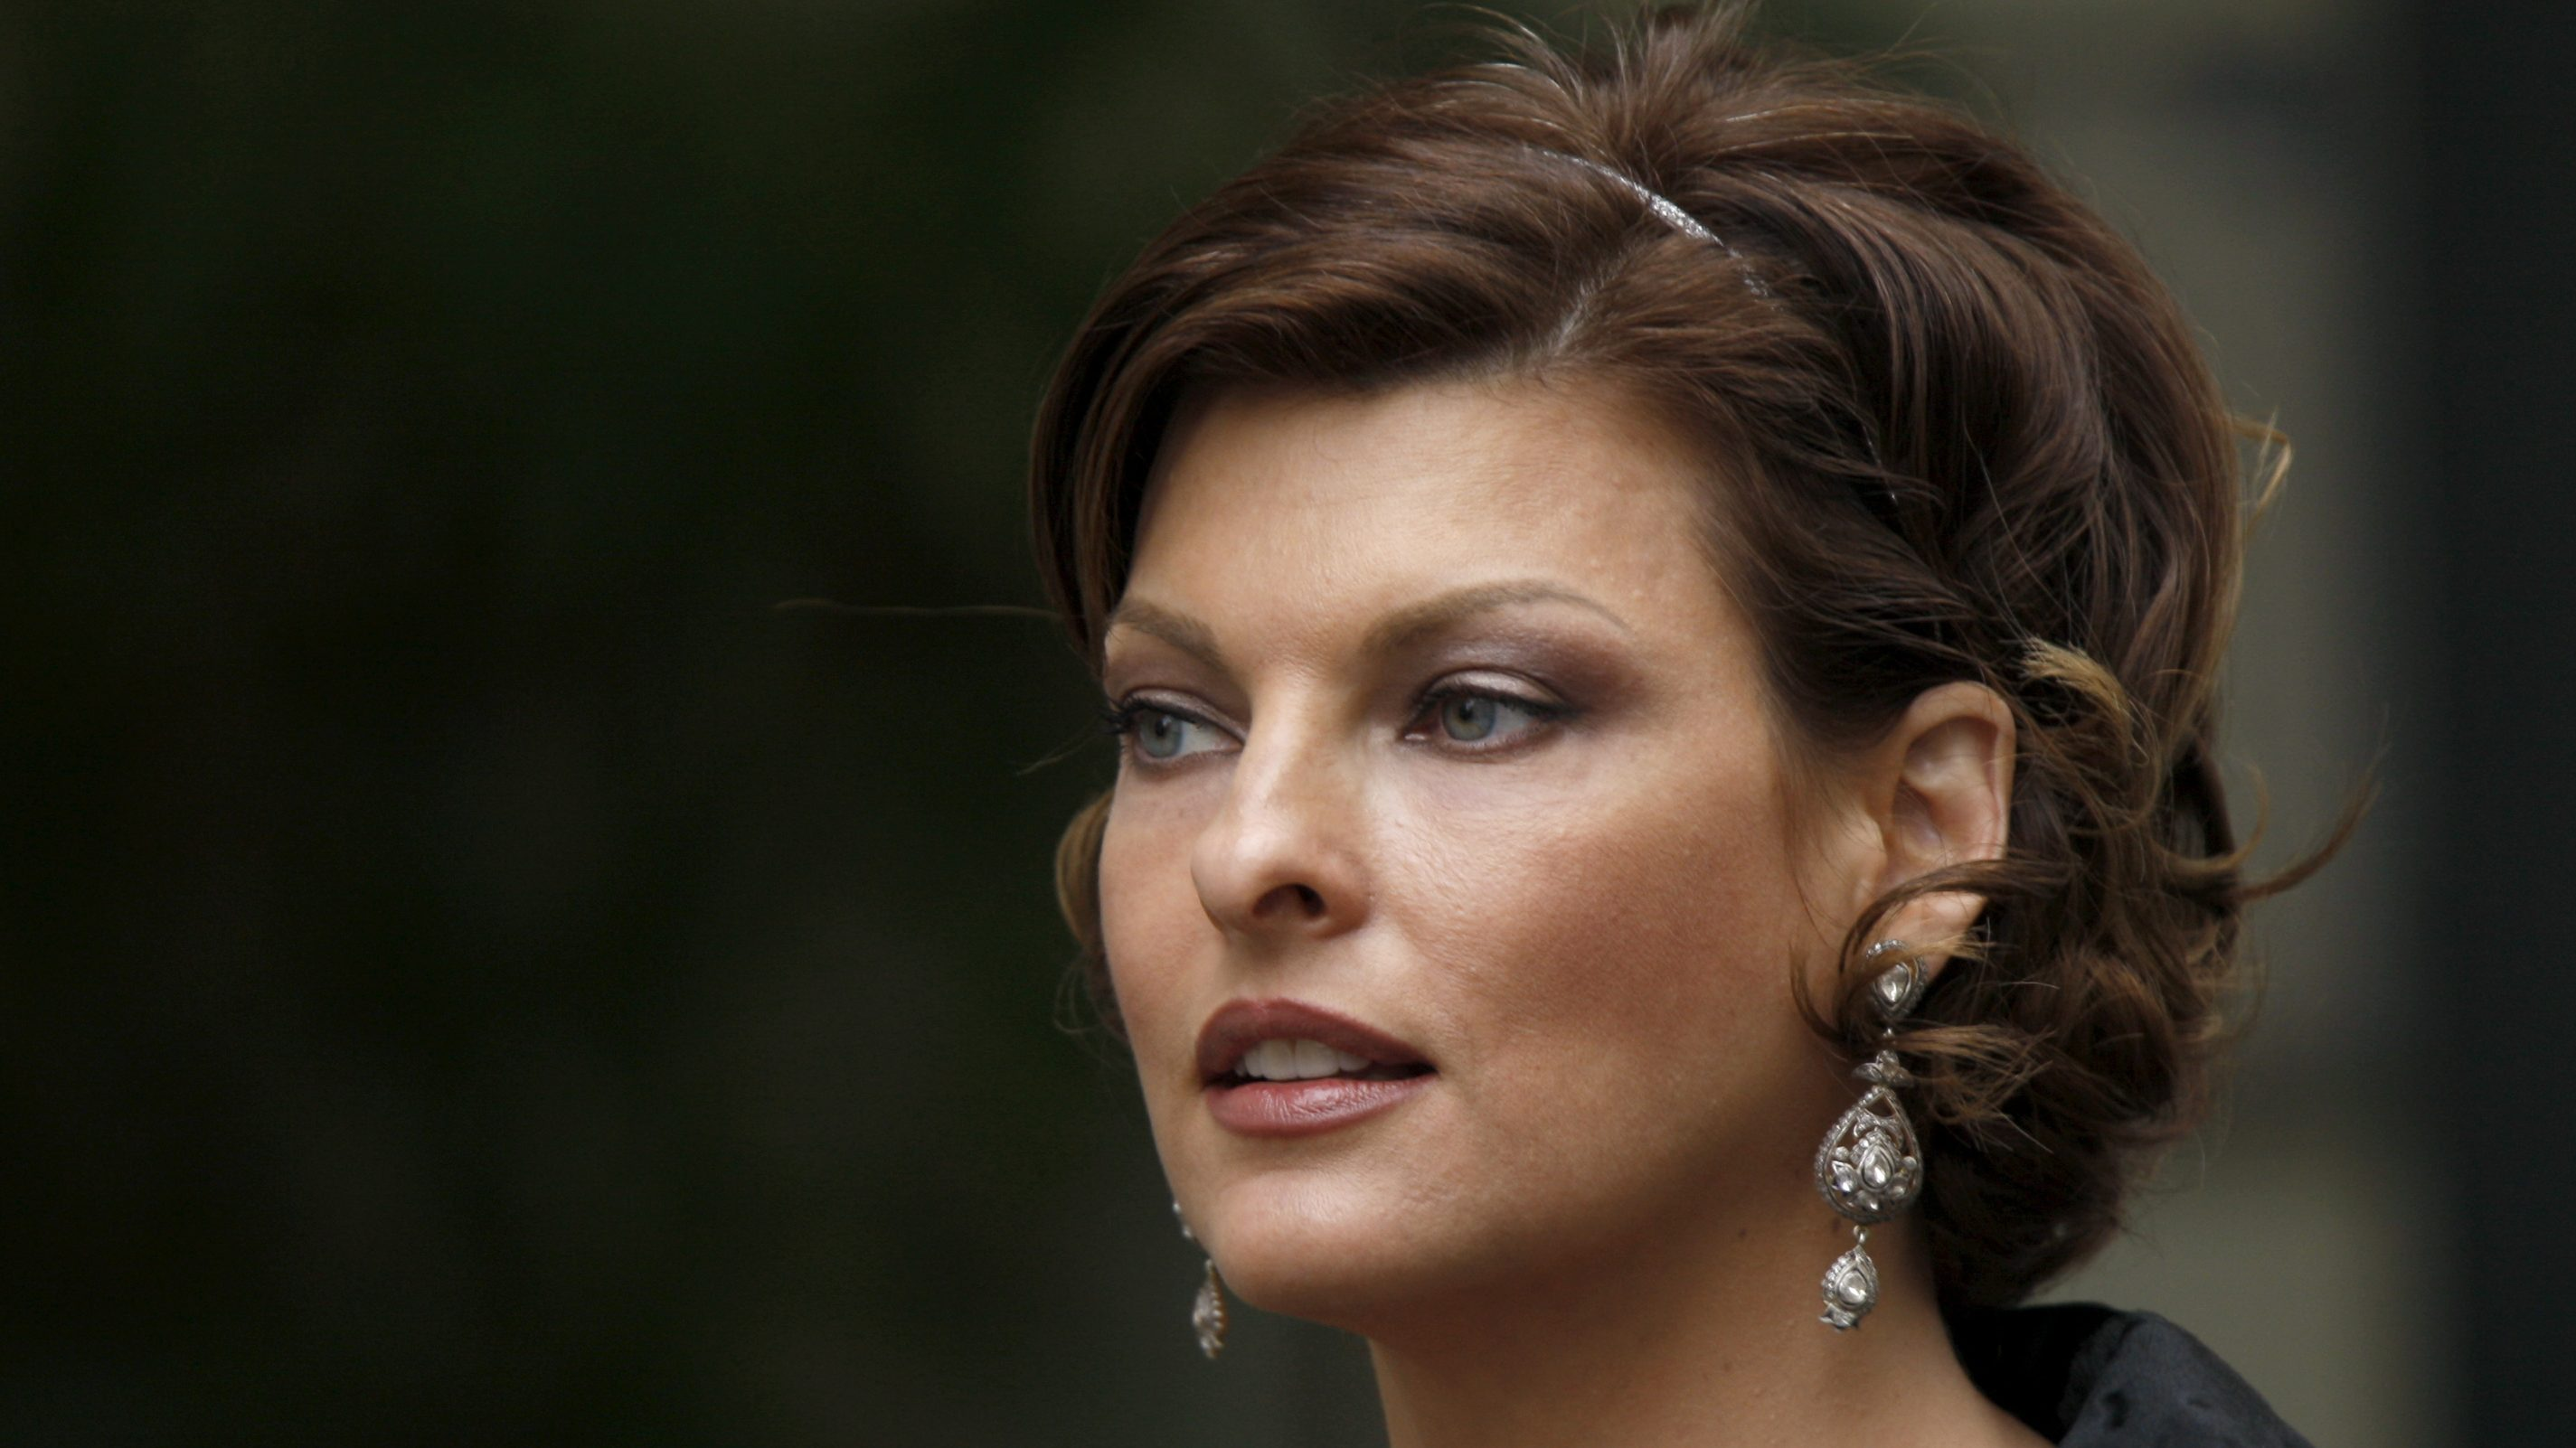 Canadian super model Linda Evangelista attends French designer Alexis Mabille's Spring-Summer Haute Couture 2009 fashion show in Paris January 26, 2009.